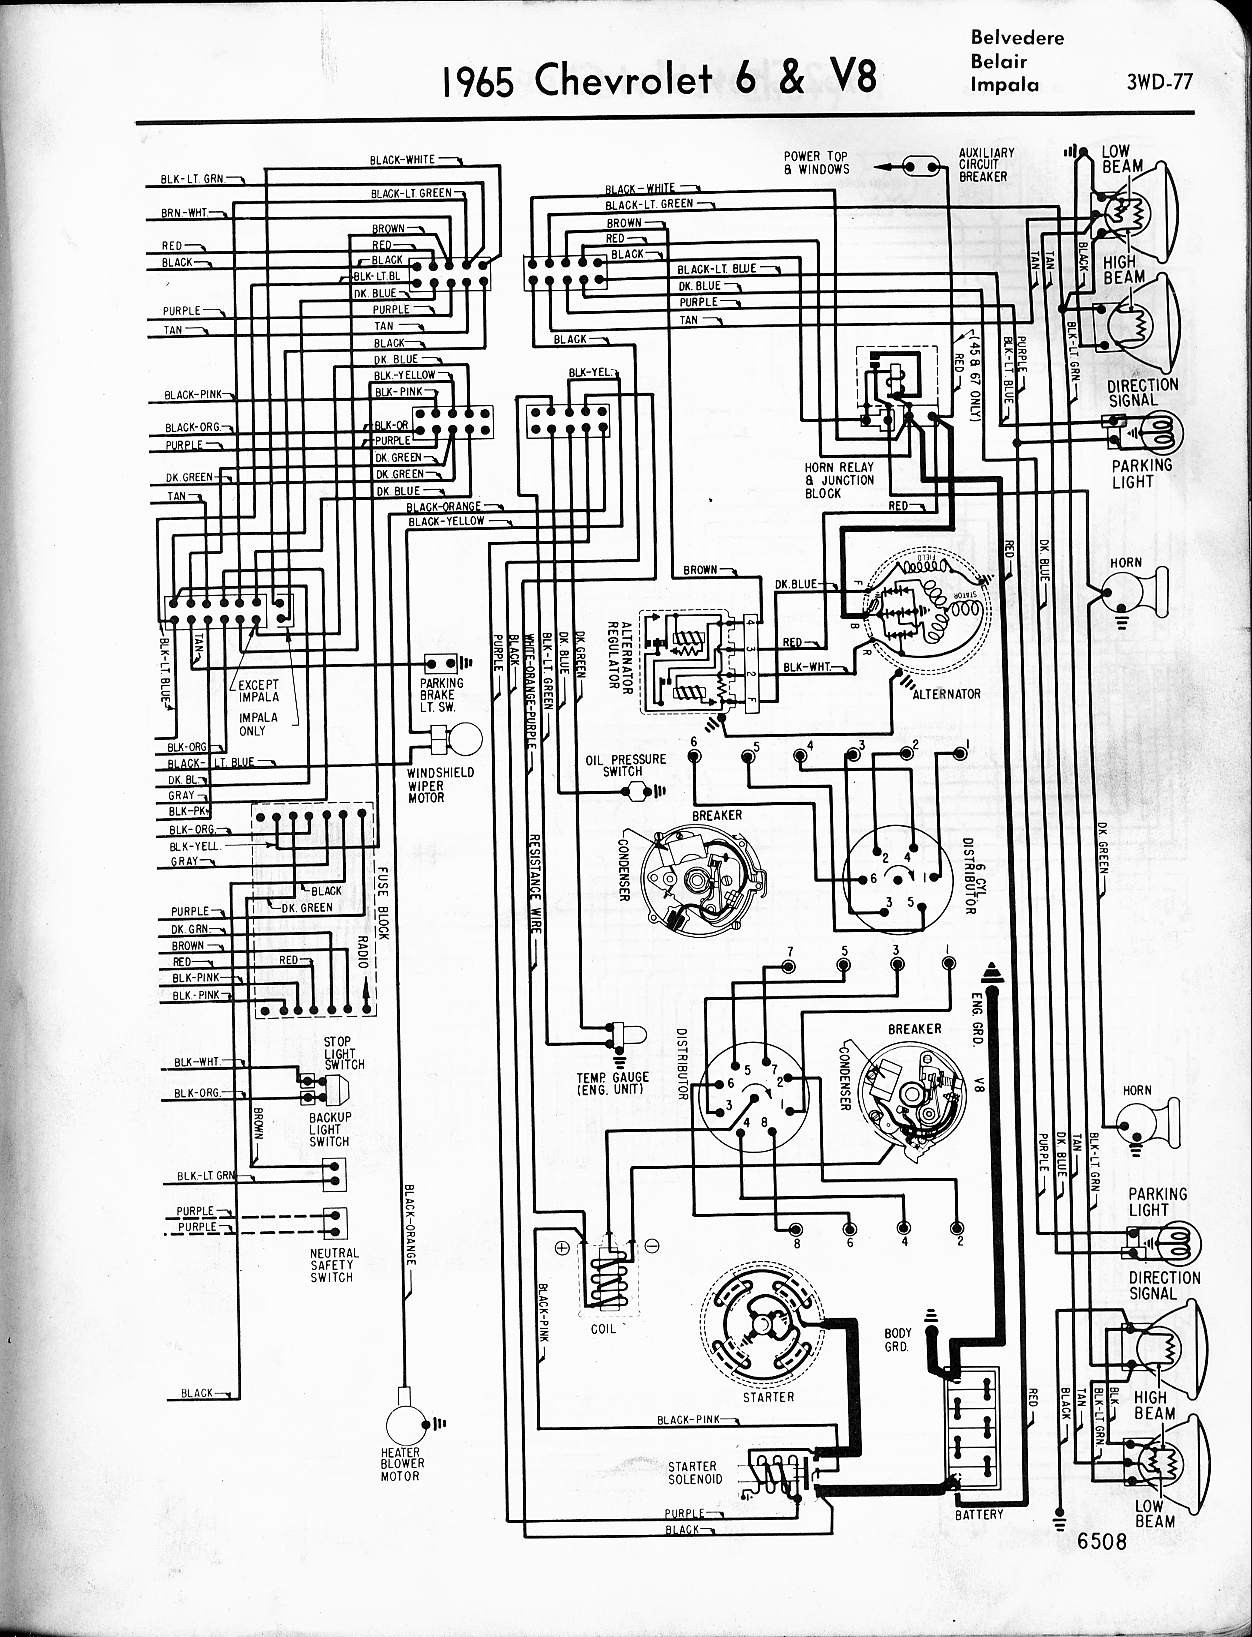 1969 impala wiring diagram wiring diagram 79 chevy c10 wiring-diagram 1969 chevy c10 wiring diagram elegant wiring diagram image 1966 impala wiring diagram 1965 6 &